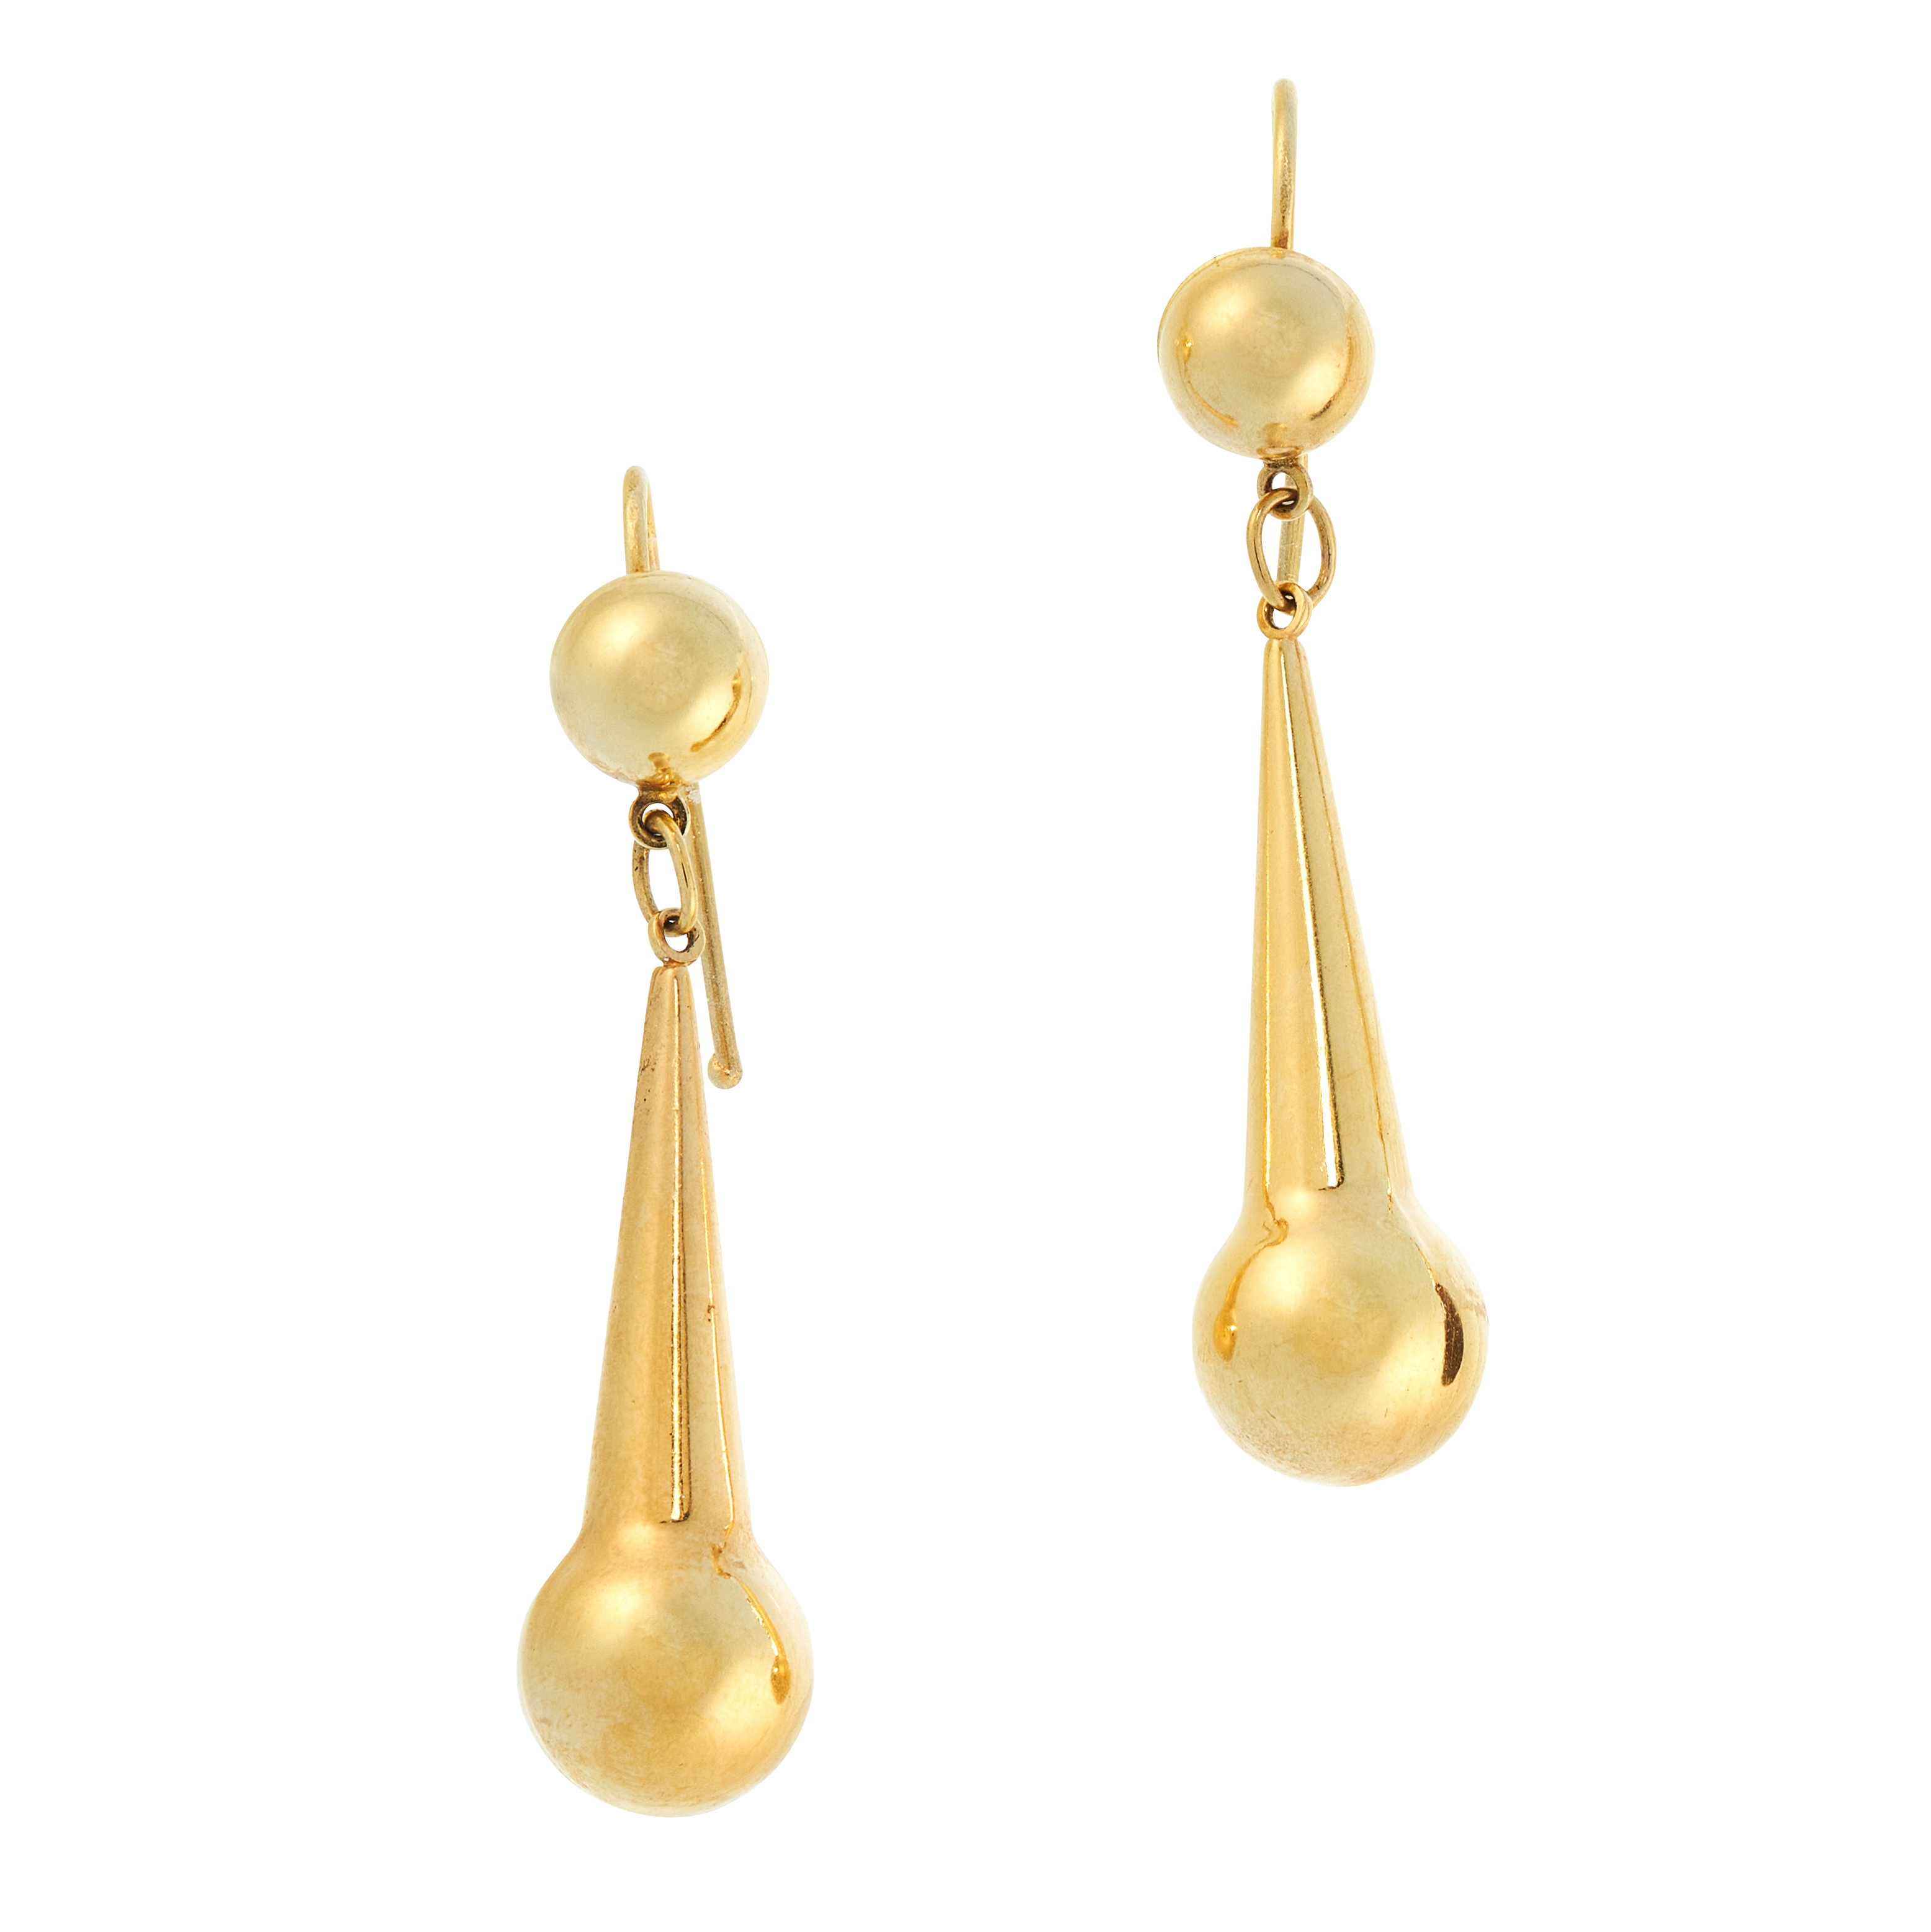 A PAIR OF ANTIQUE DROP EARRINGS, 19TH CENTURY in yellow gold, the articulated bodies formed of